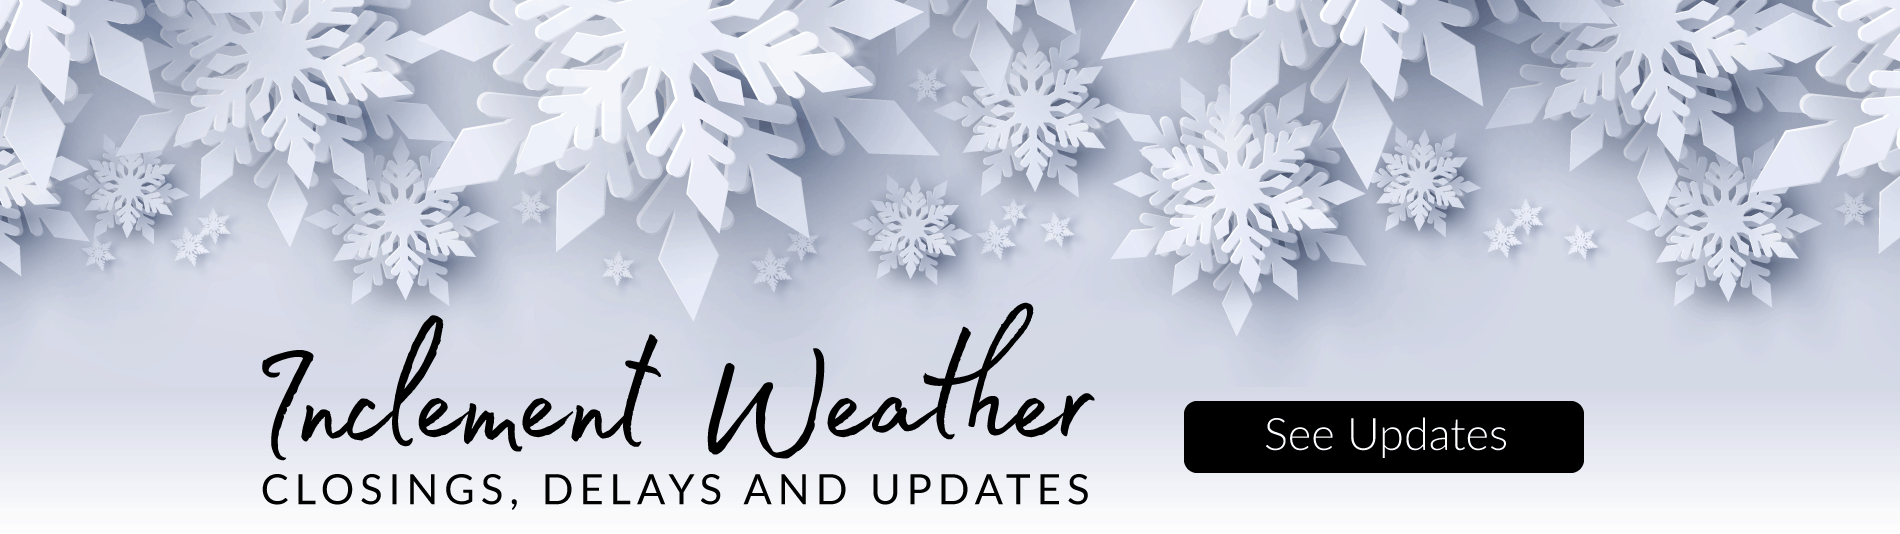 Inclement weather closings, delays and updates - Click Here